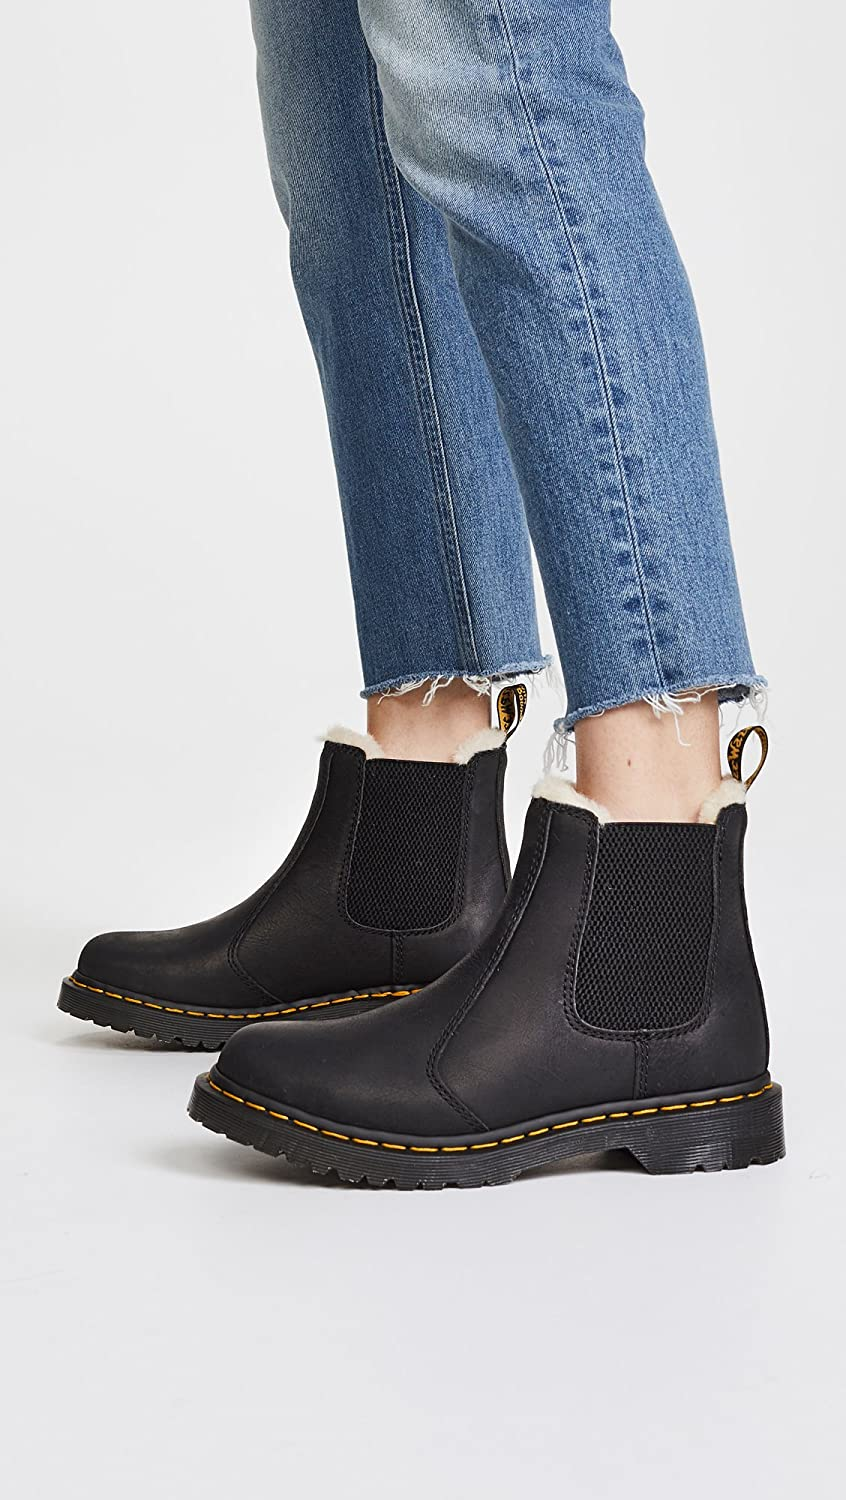   Dr. Martens Women's Leonore Burnished Wyoming Leather Fashion Boot   Mid-Calf